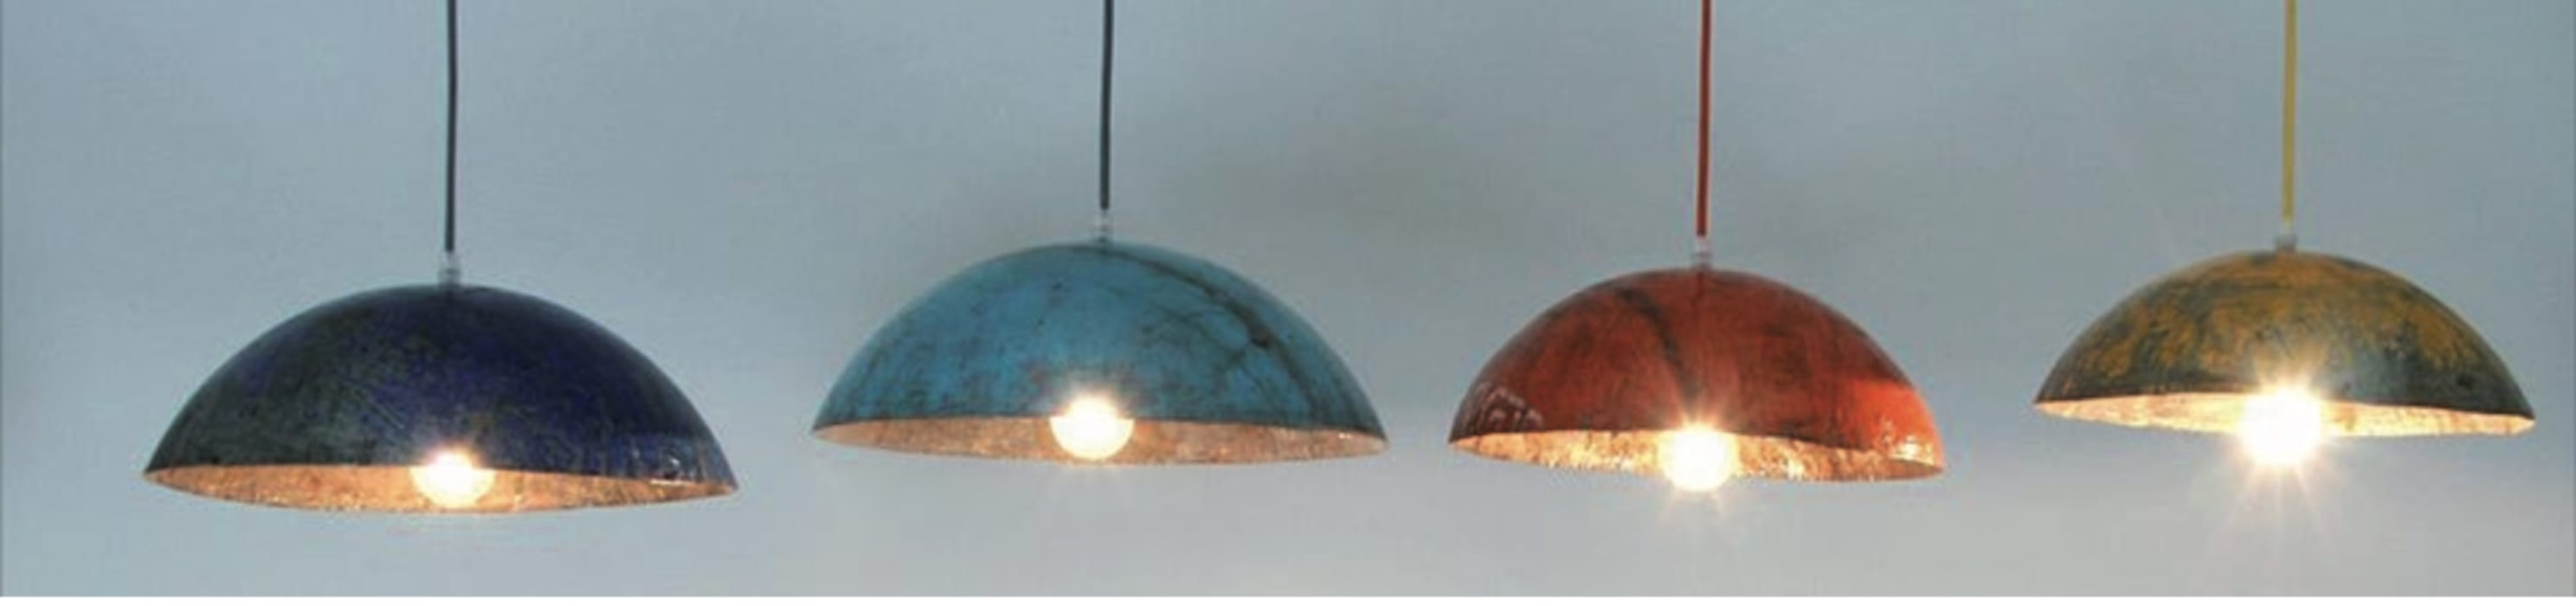 Upcycling Deluxe Living roomLighting